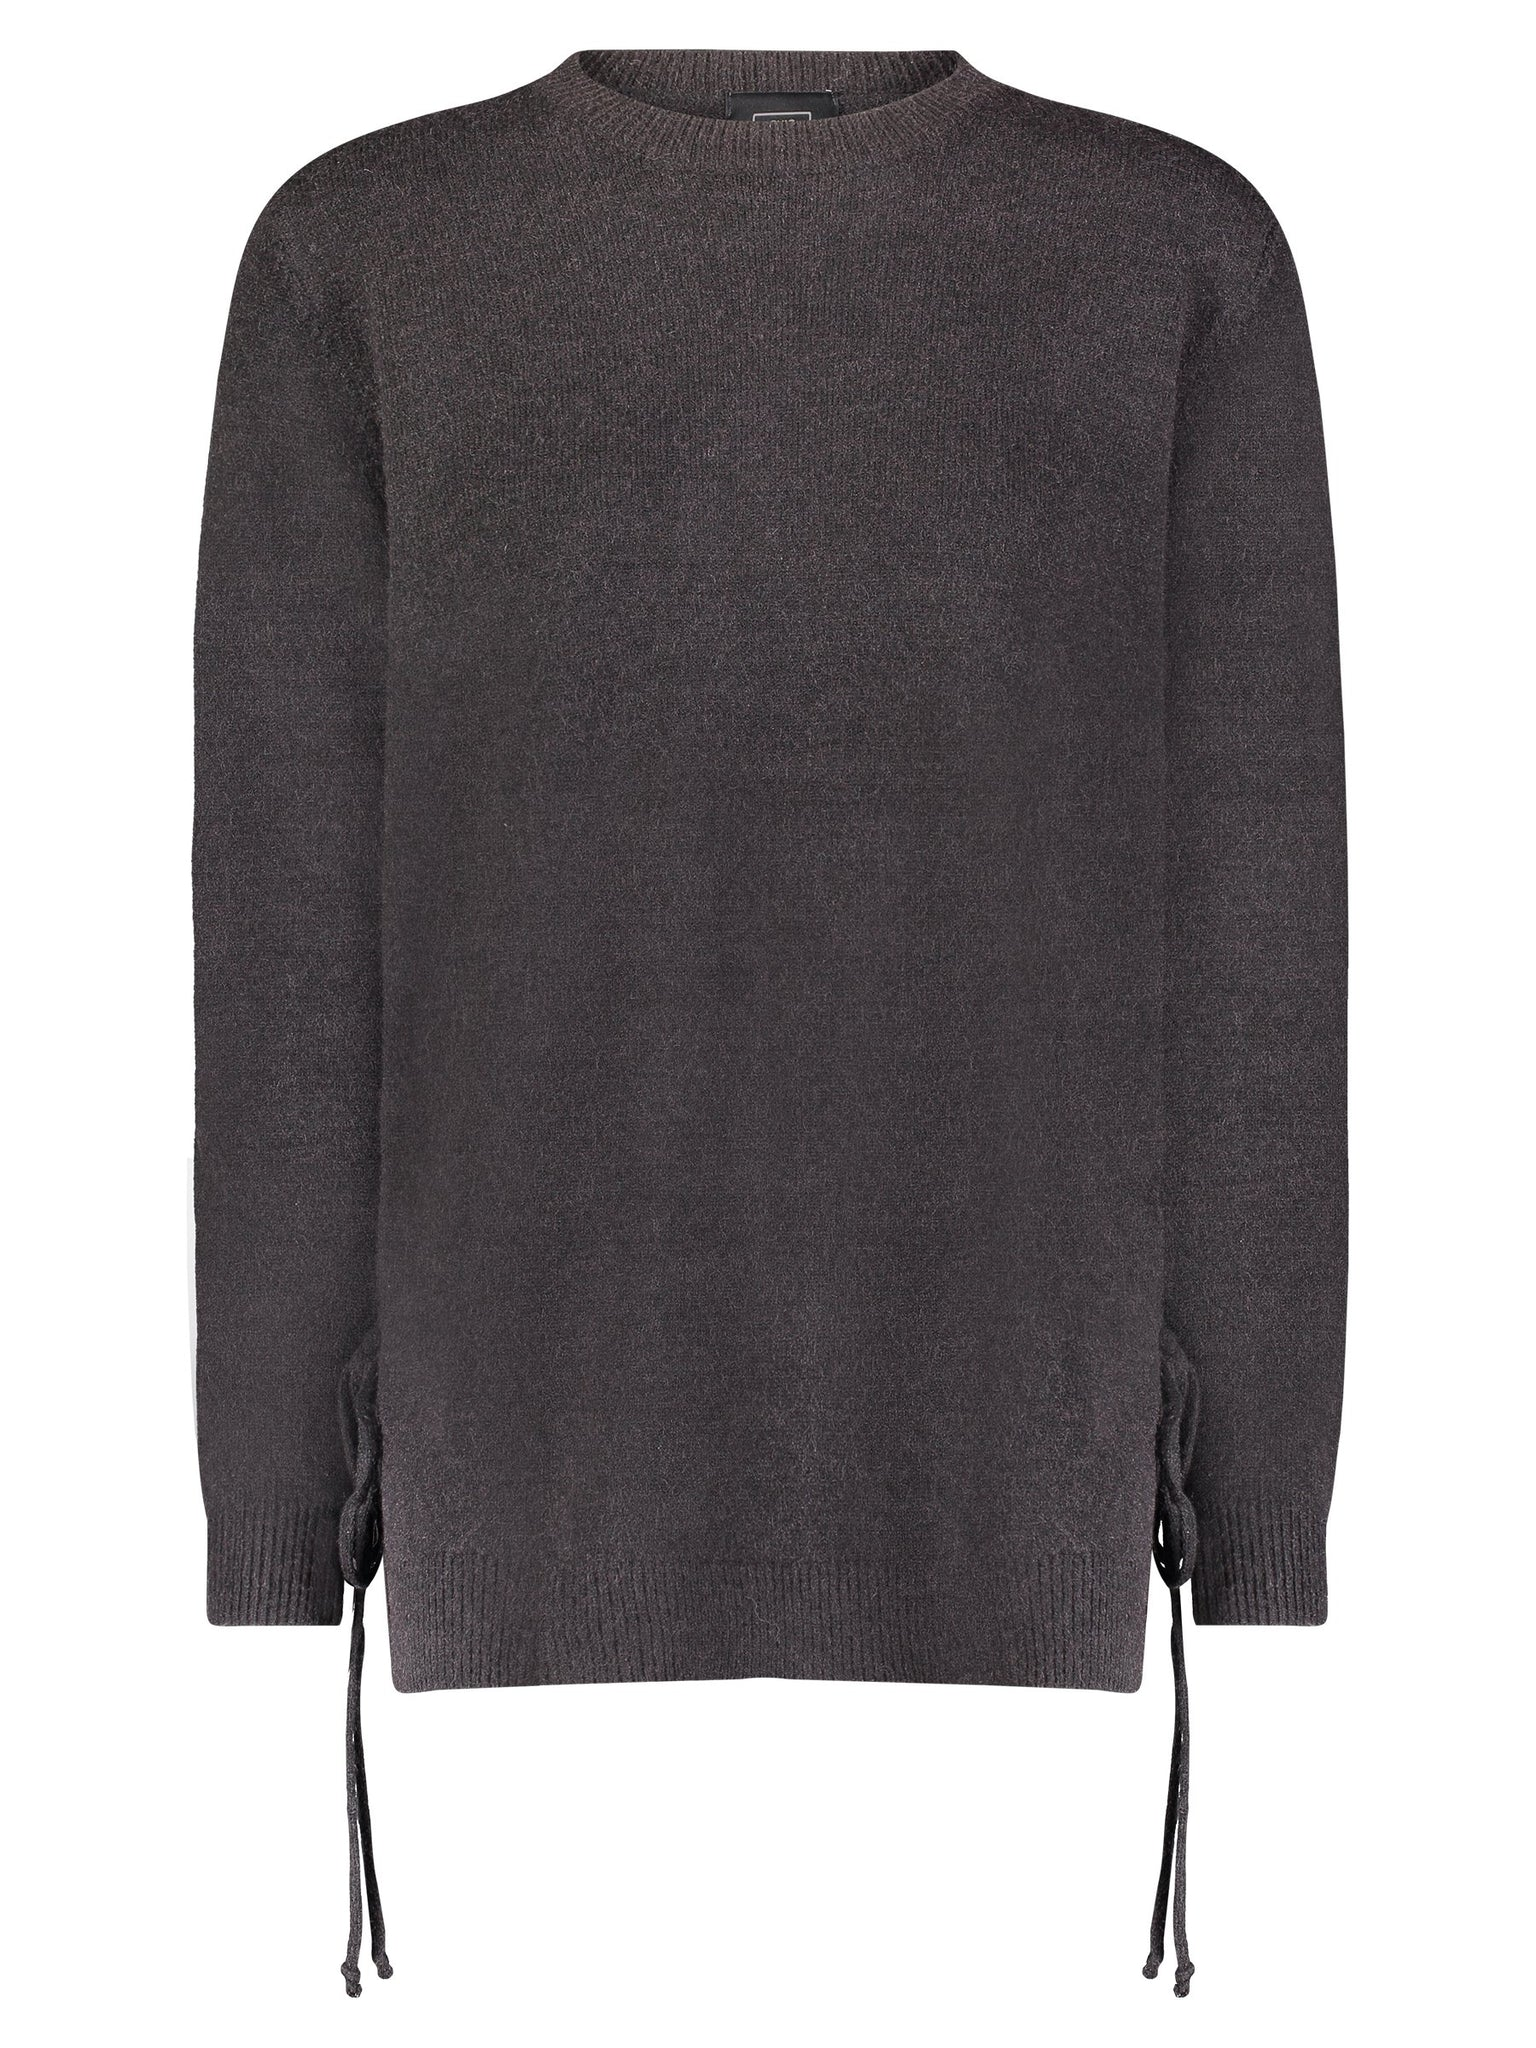 image of Lyon Lace-up sides Sweater